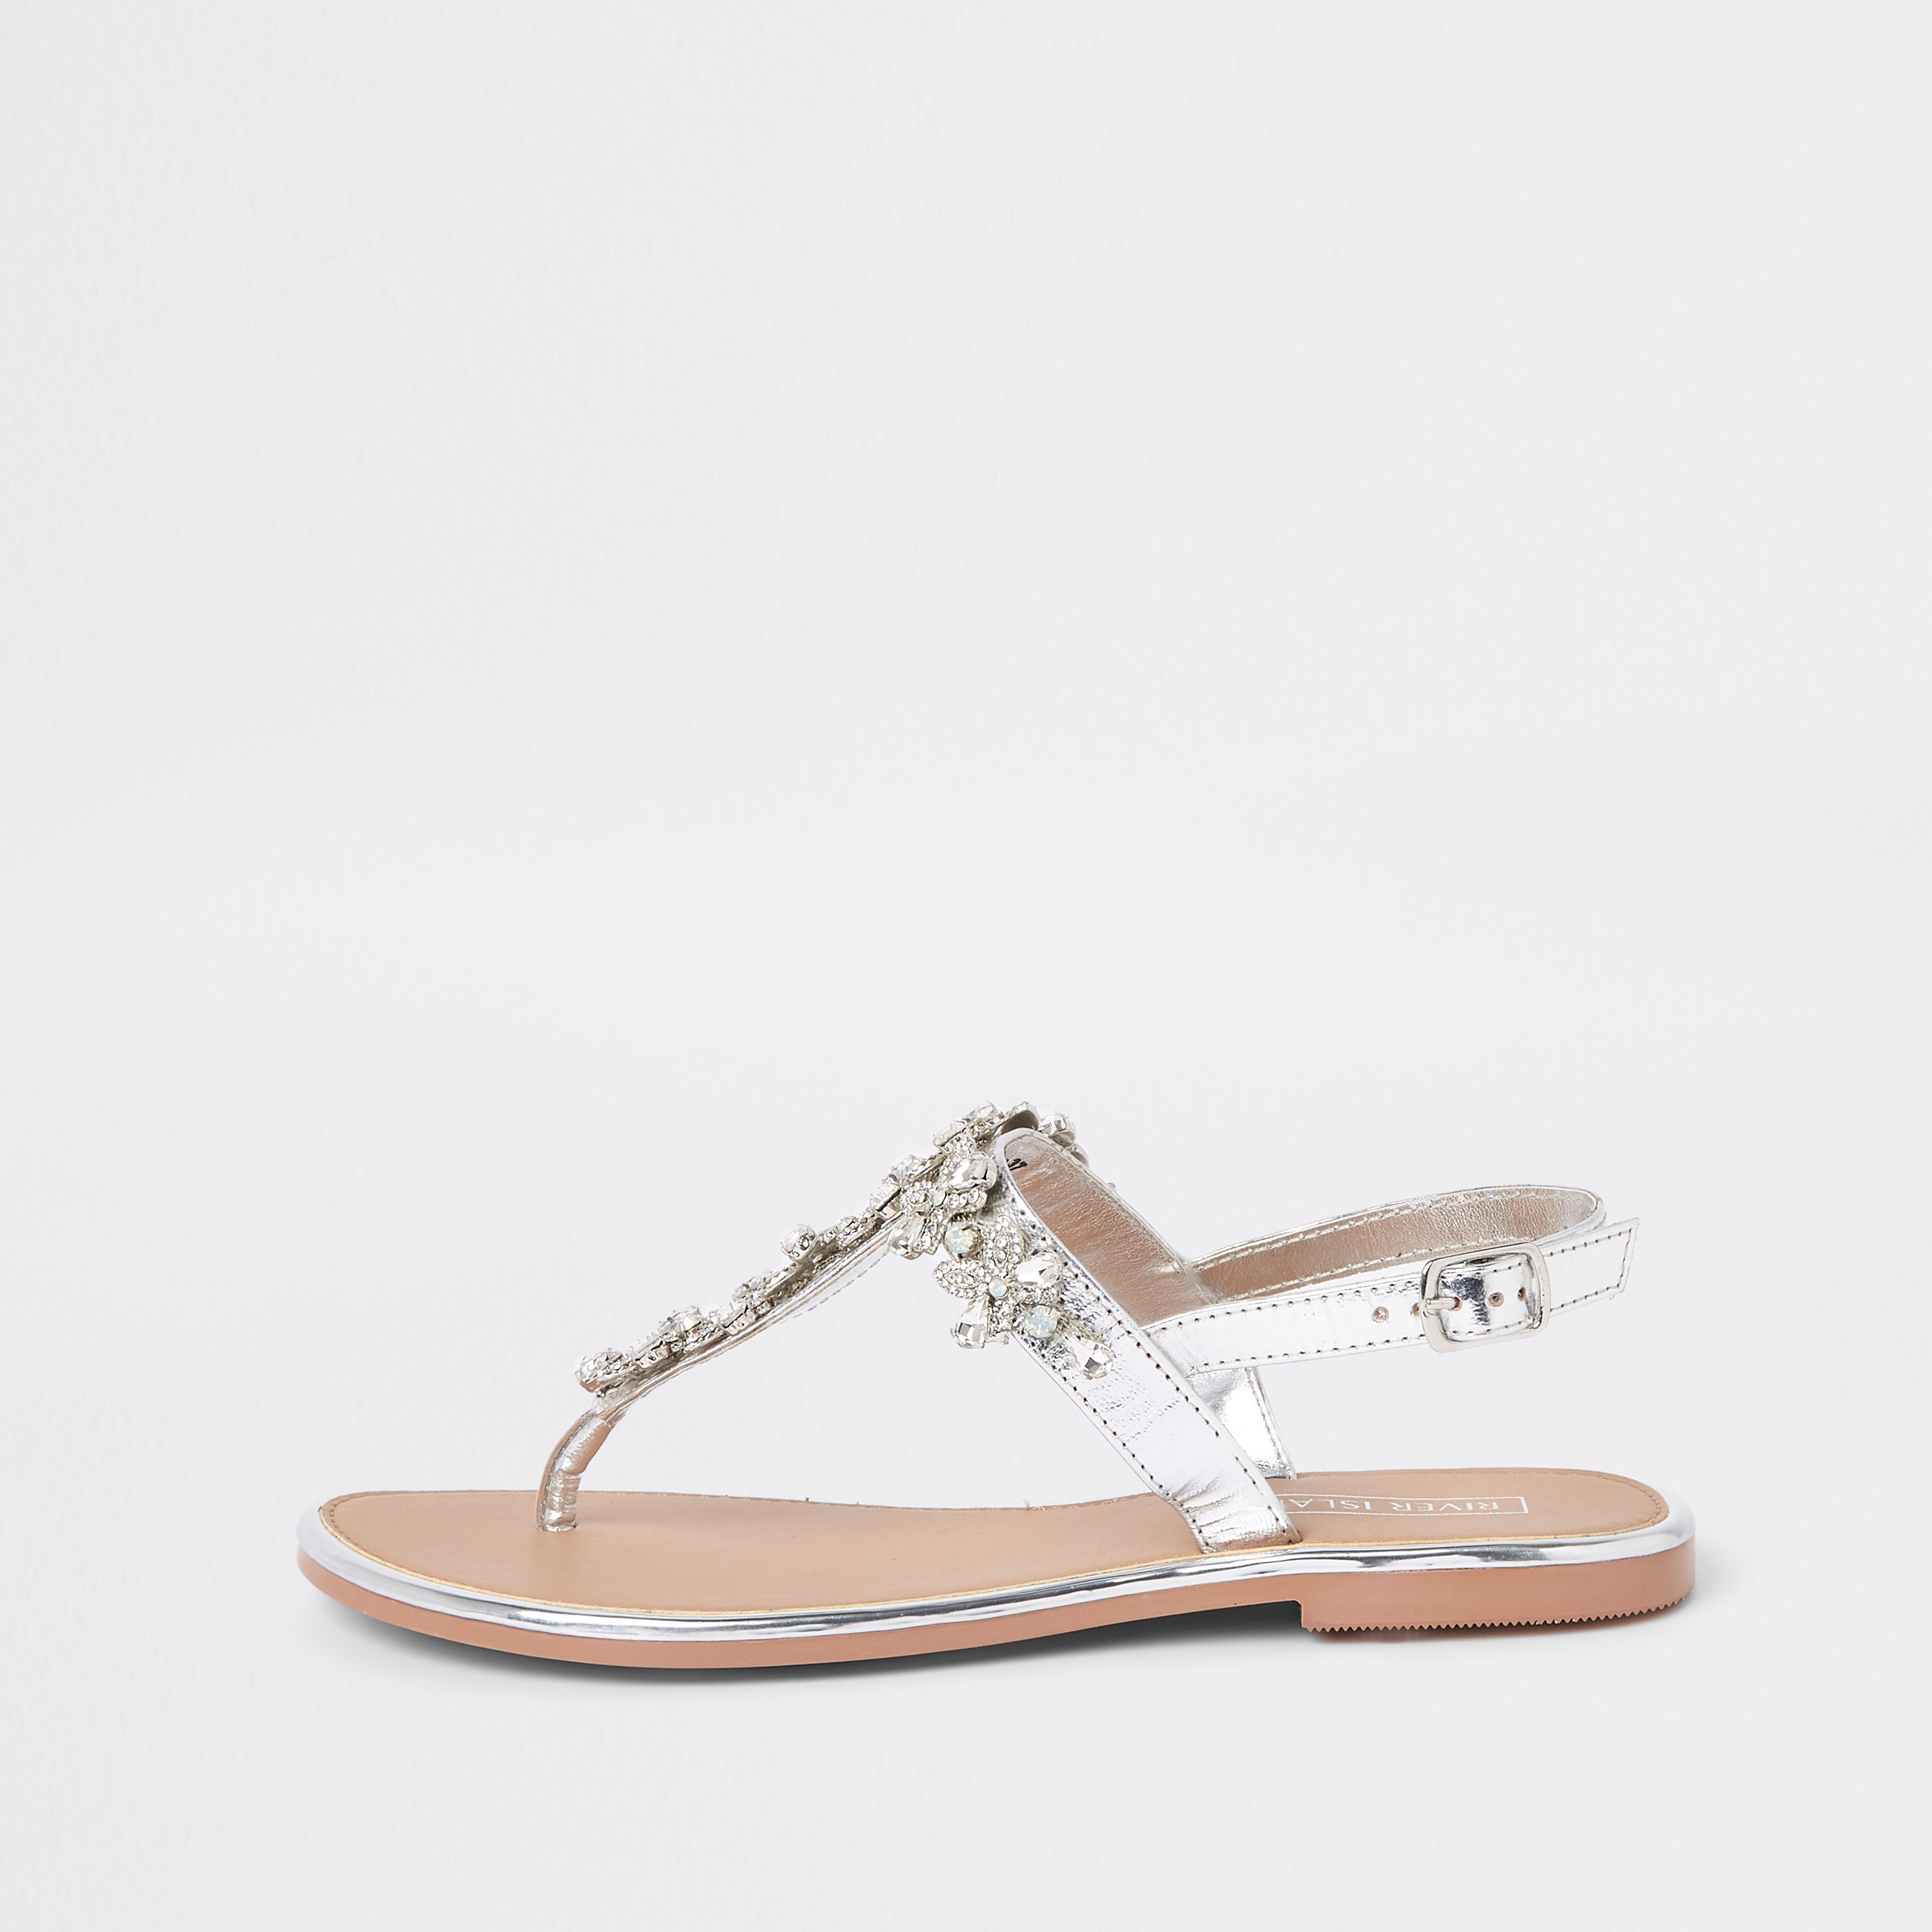 5710fd41c98 Silver leather jewel embellished flat sandals in 2019 | Products ...